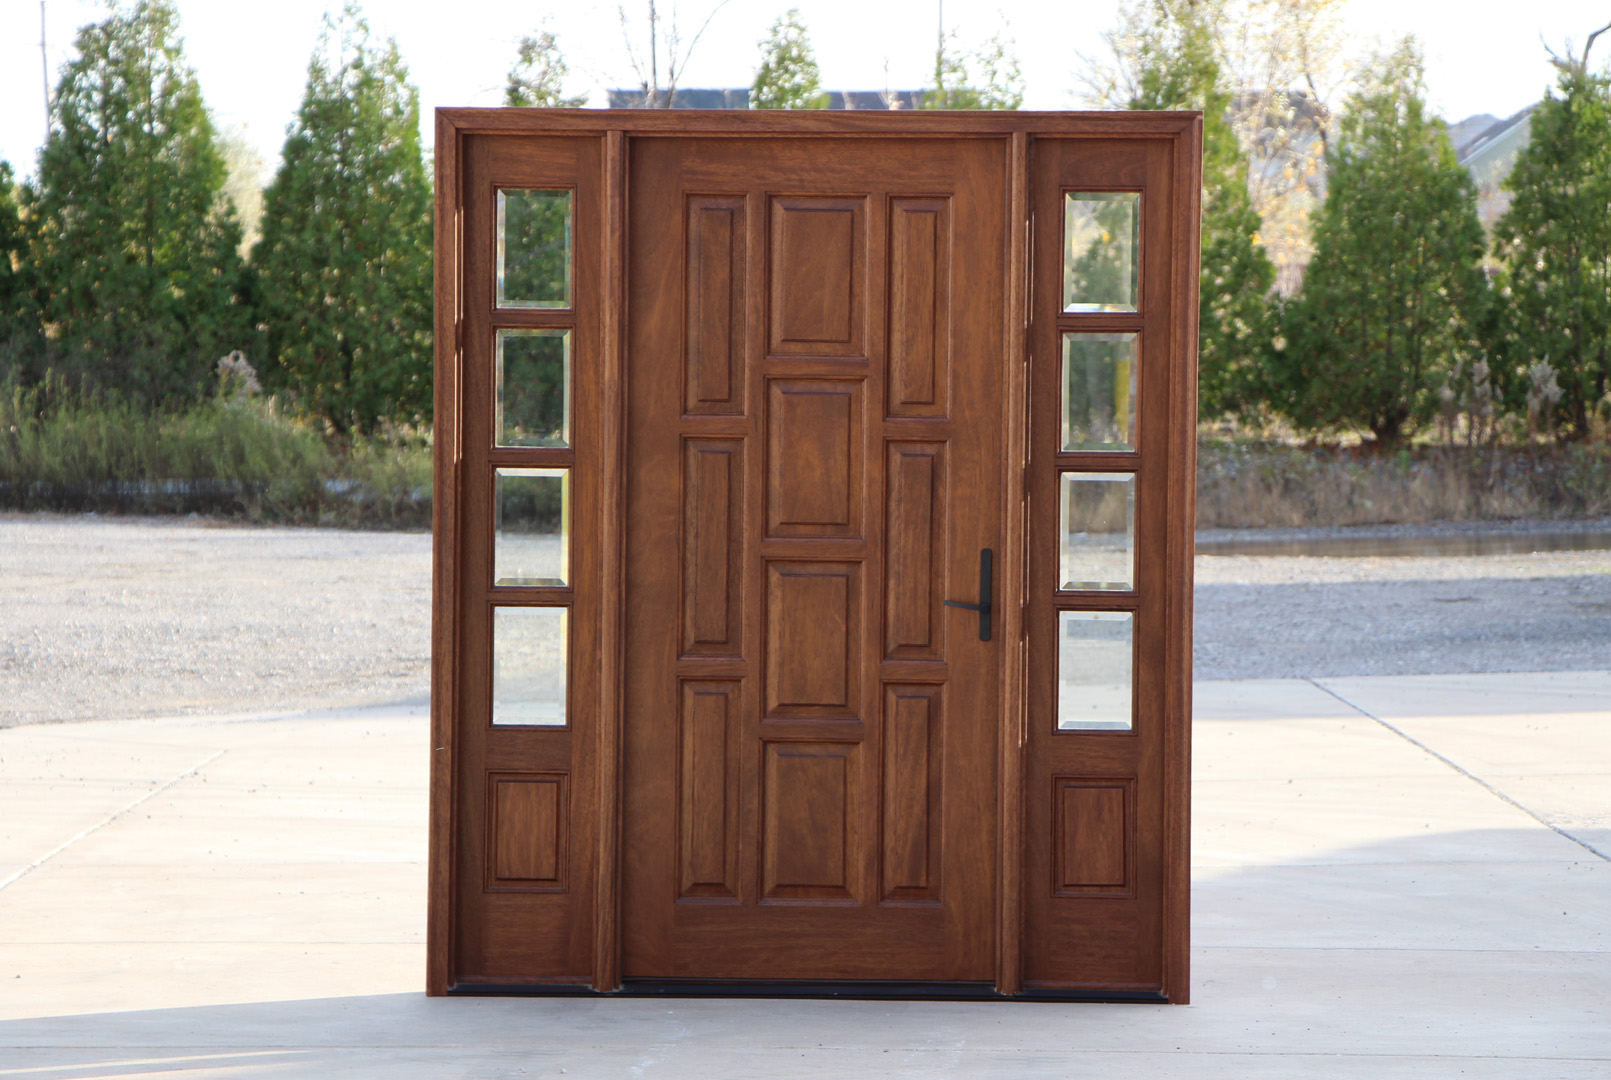 Stunning 48 Inch Exterior Door Images - Interior Home Design ...